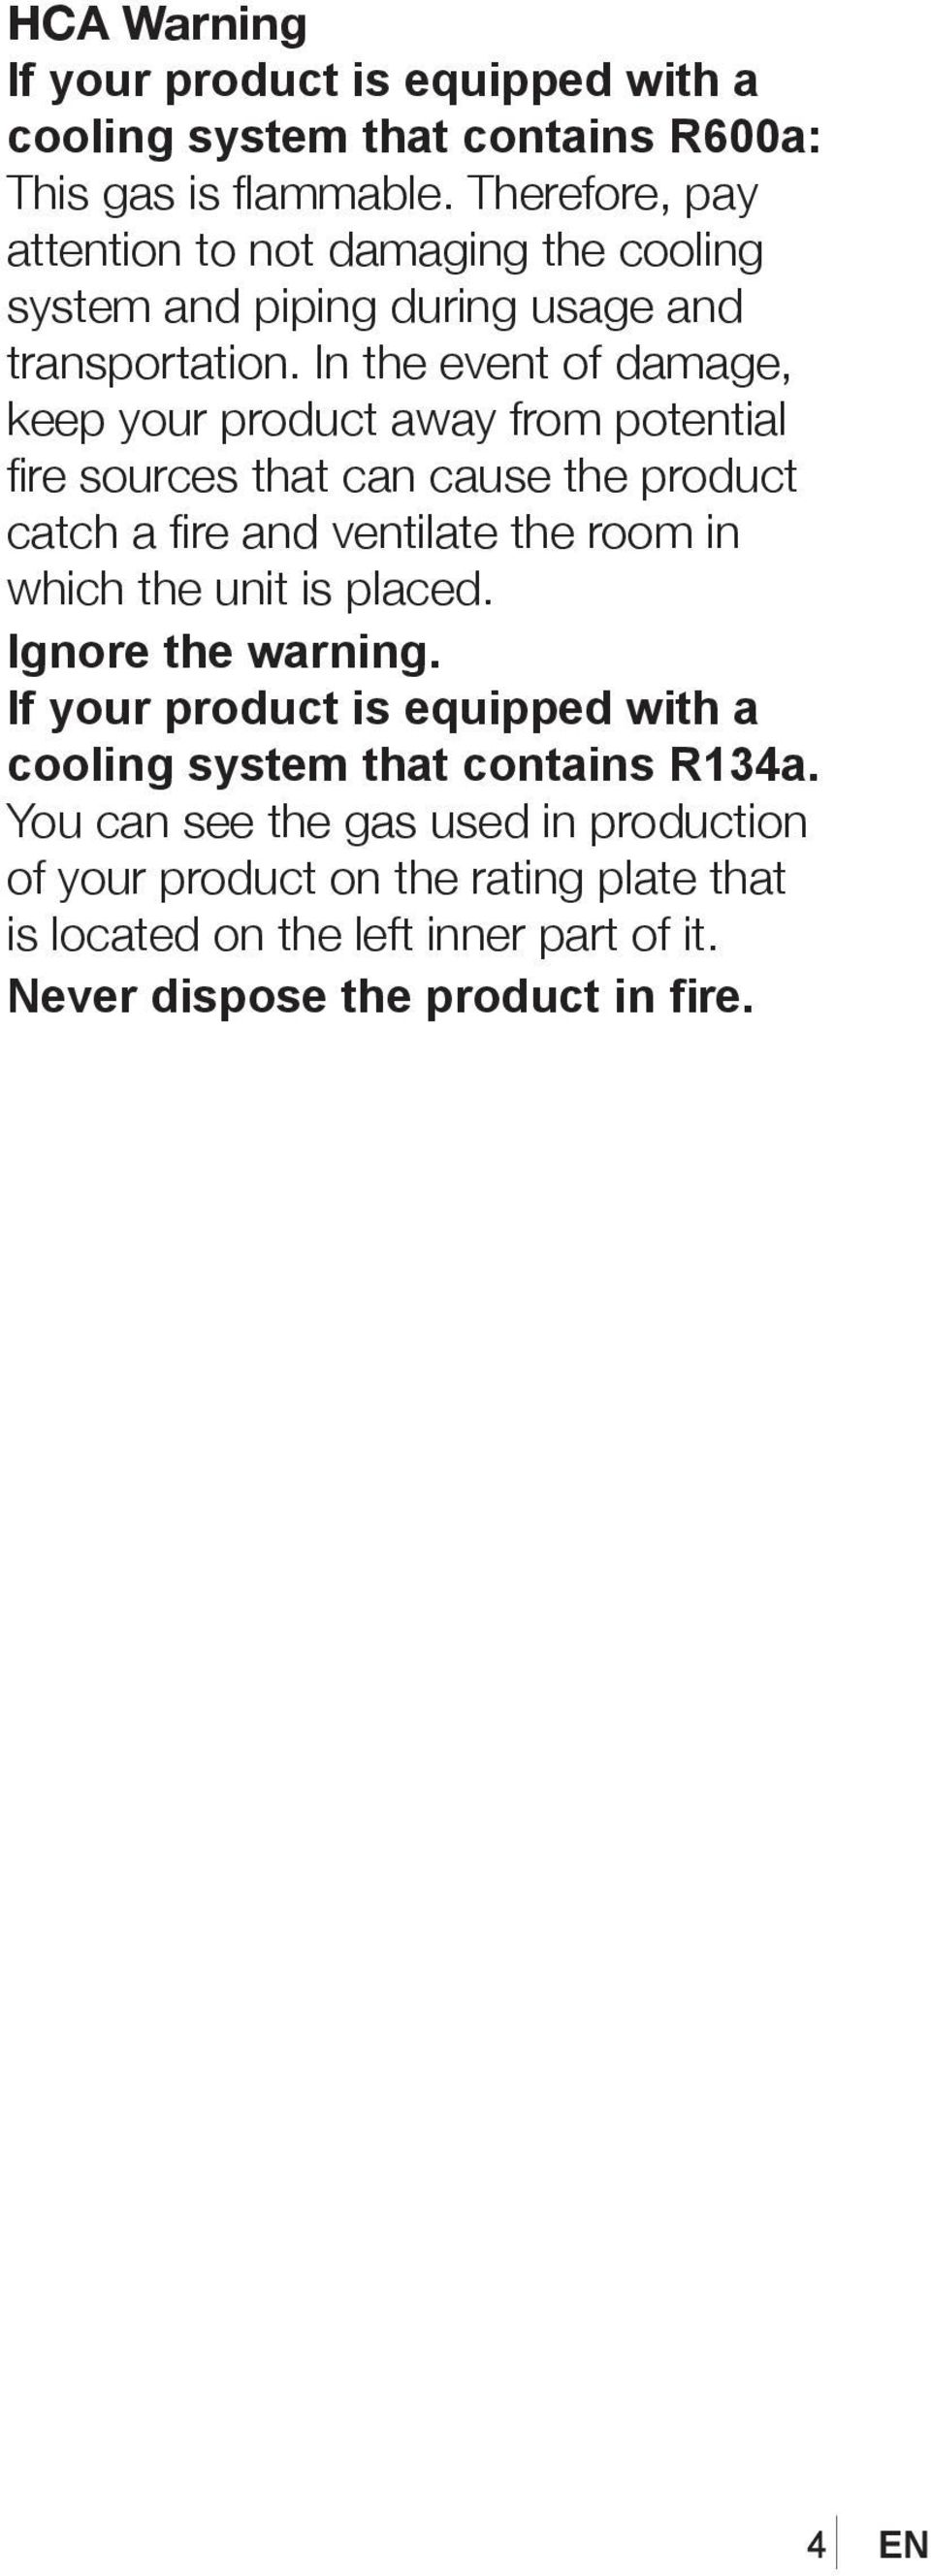 In the event of damage, keep your product away from potential fire sources that can cause the product catch a fire and ventilate the room in which the unit